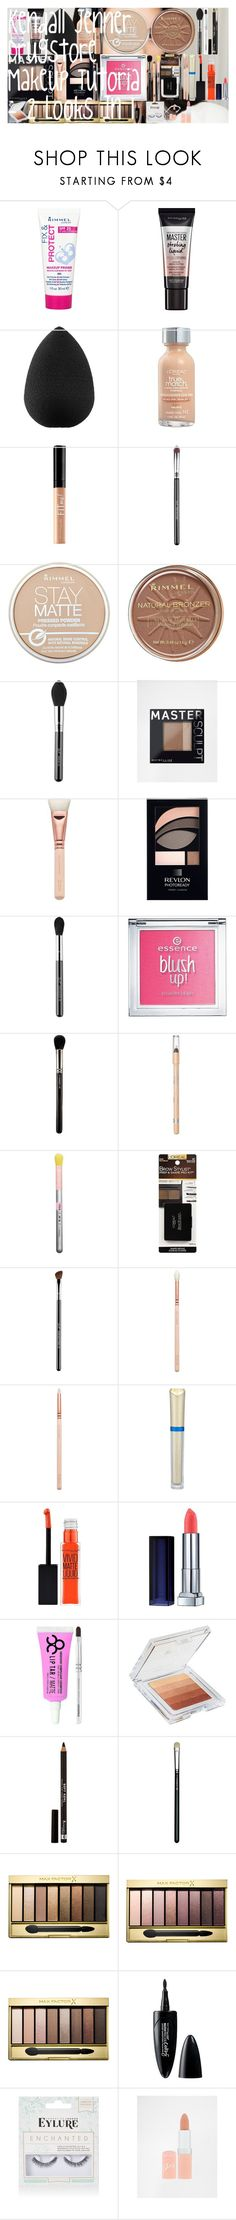 Kendall Jenner Drugstore Makeup Tutorial - 2 Looks In 1 by oroartye-1 on Polyvore featuring beauty, Max Factor, MAC Cosmetics, Revlon, Sigma, Obsessive Compulsive Cosmetics, beautyblender, ZOEVA, L'Oréal Paris and Maybelline